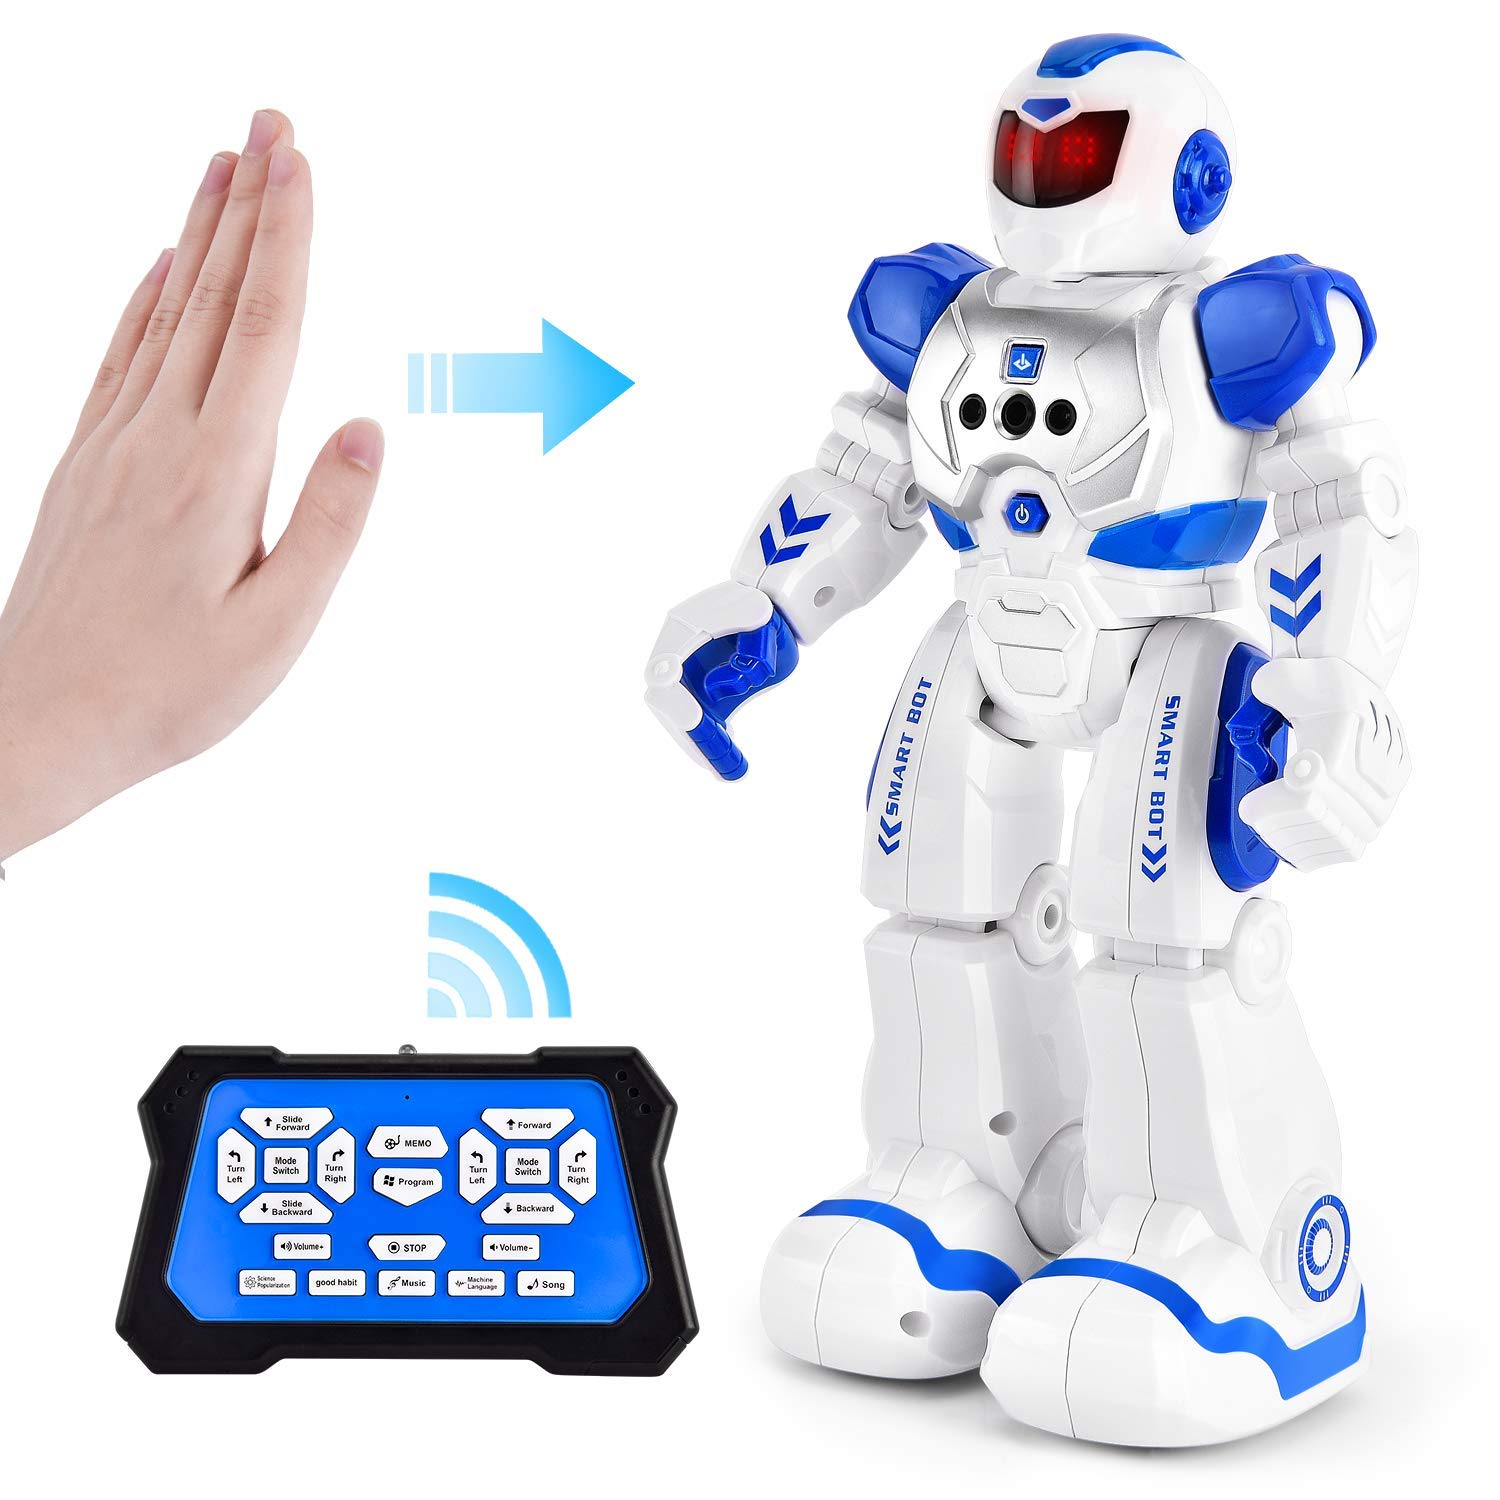 Rainbrace Smart Robot Toys Remote Control Robot,RC Robot for Kids,Robotic Toys for 4 5 6 7 8 Years Old Boys Girls Kids Birthday Gift (Blue) by Rainbrace (Image #1)